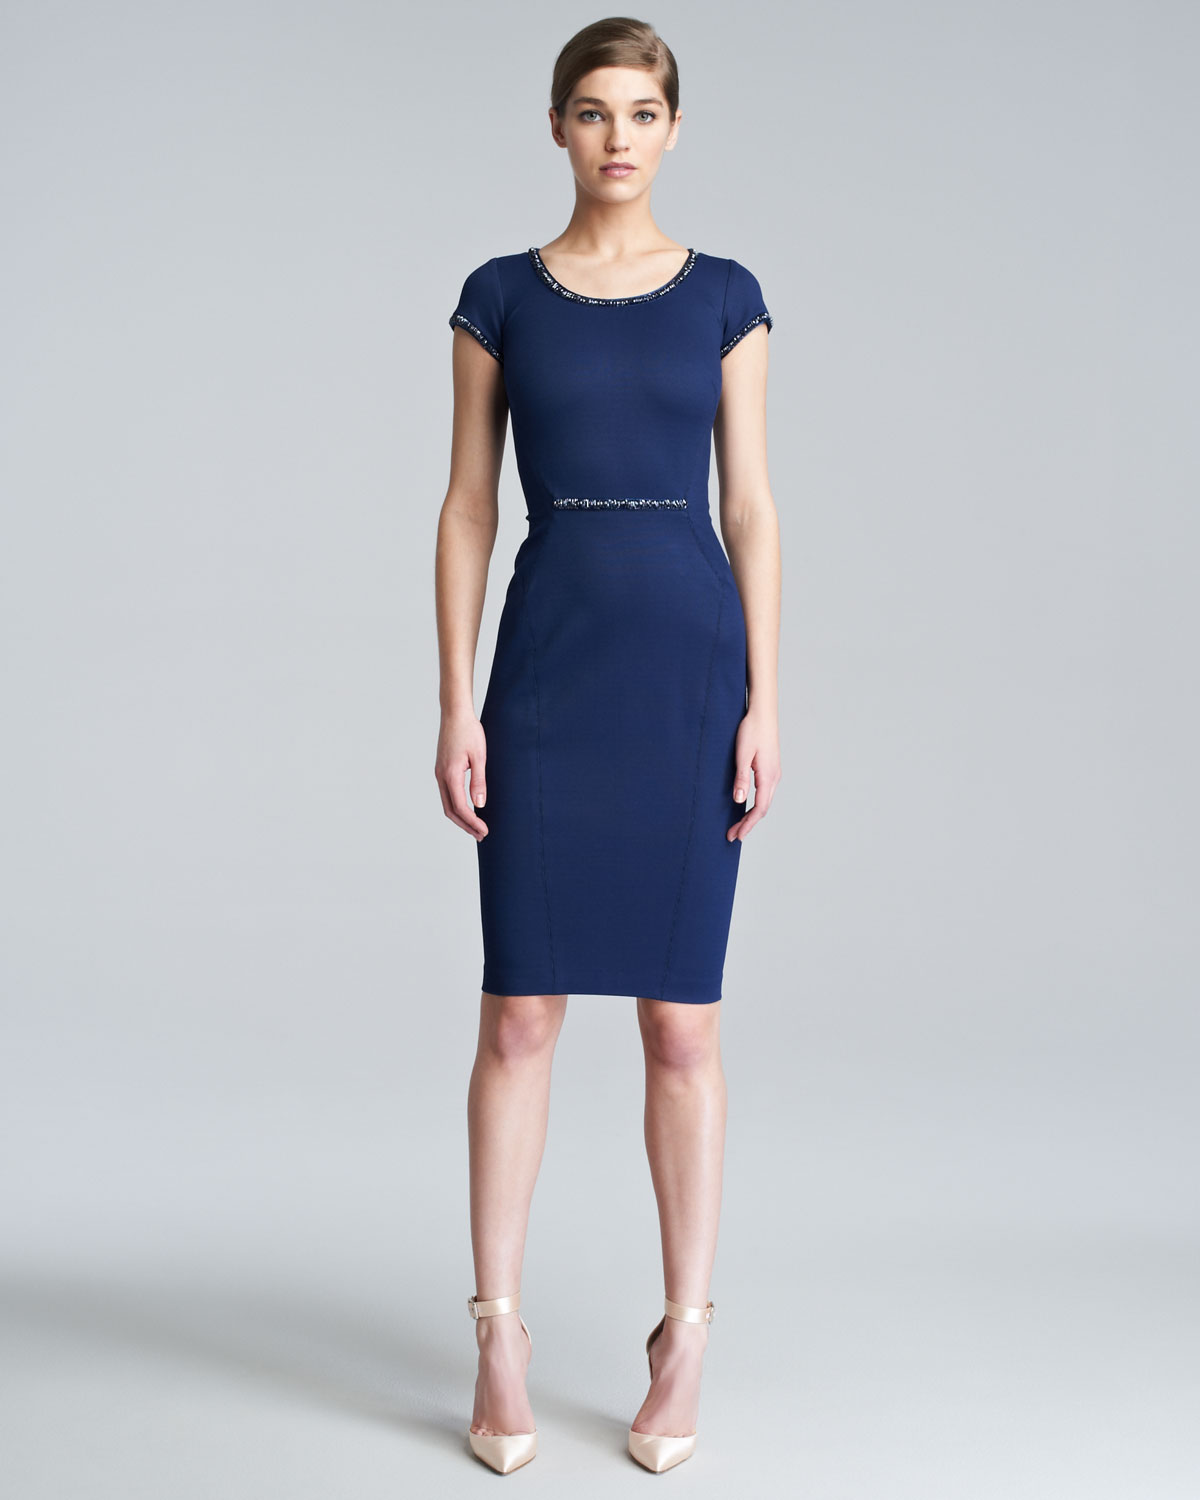 Zac posen Fitted Capsleeve Dress in Blue | Lyst